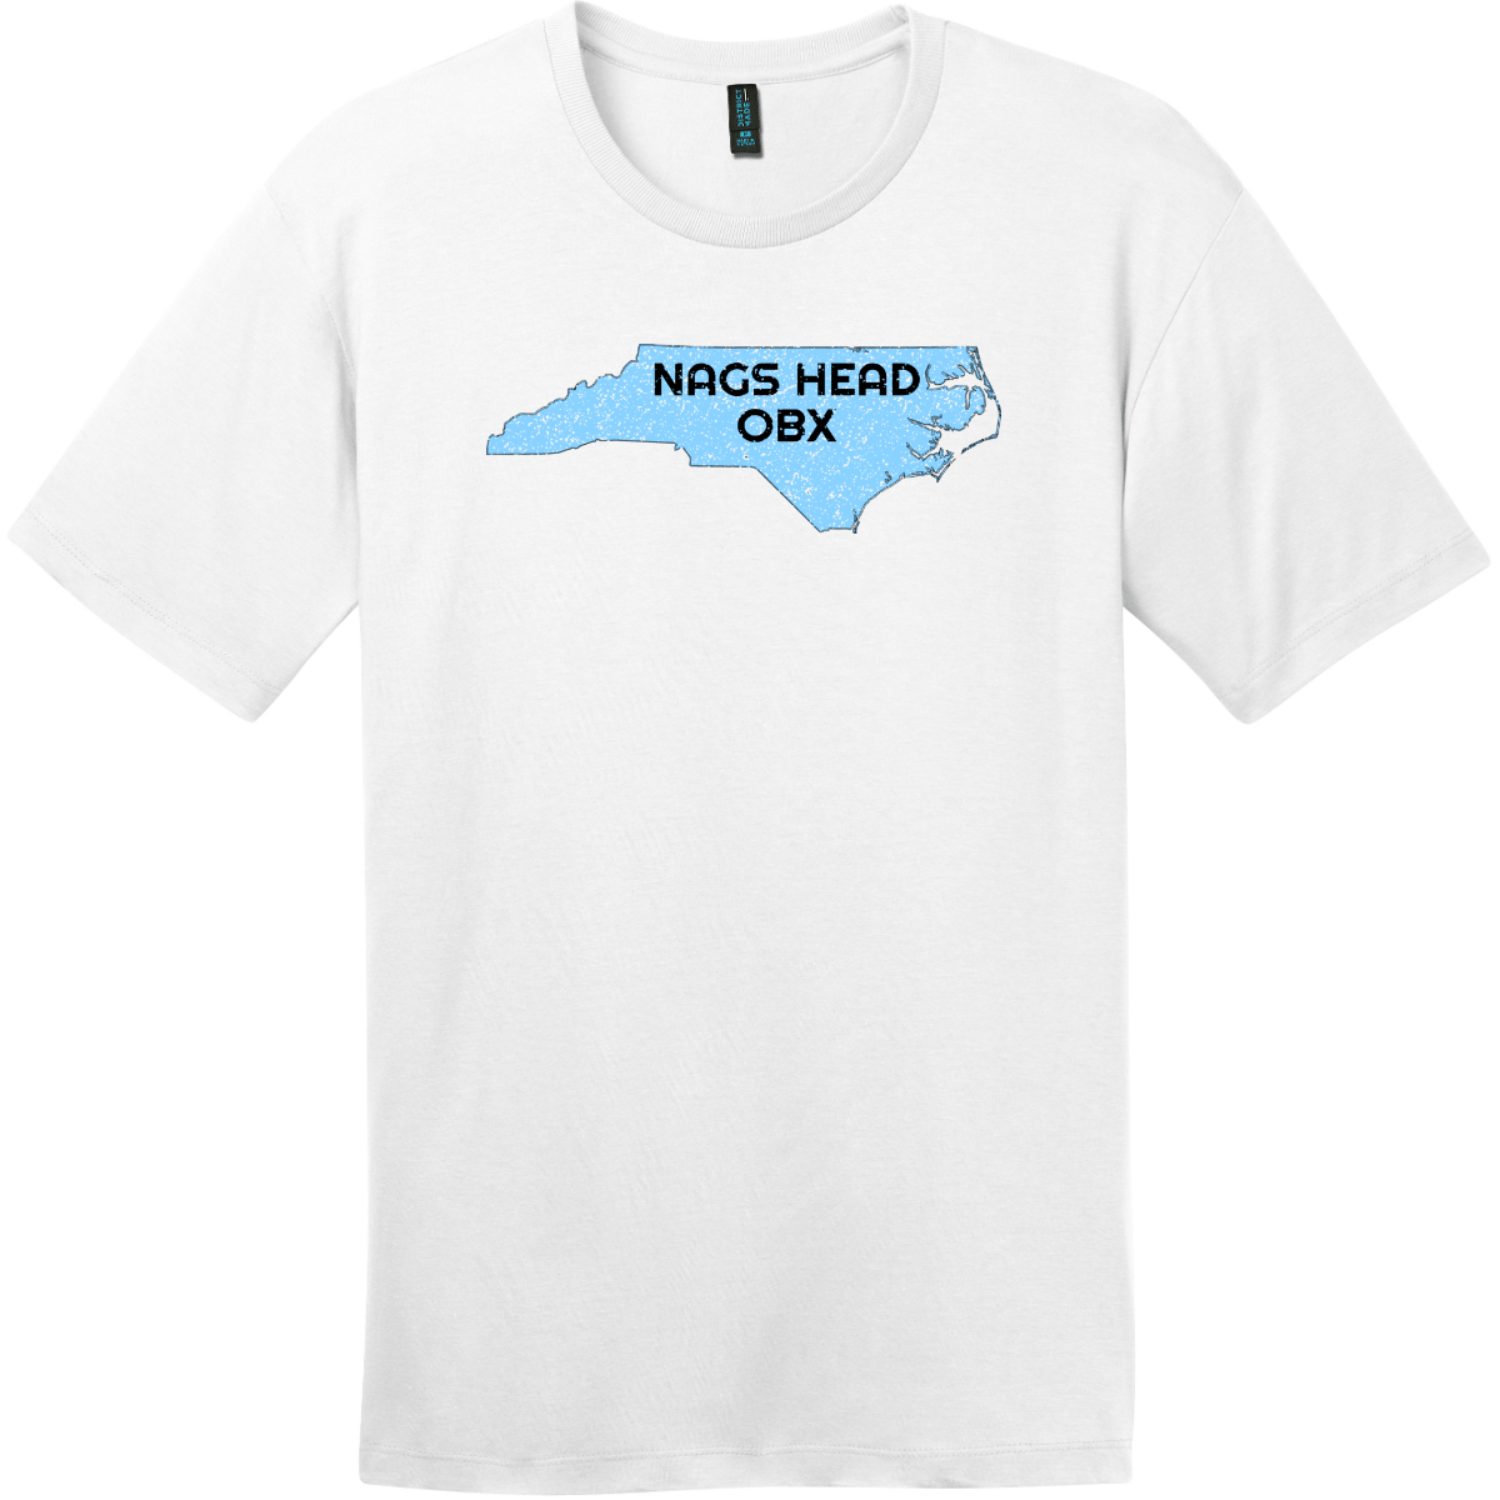 Nags Head OBX North Carolina State T-Shirt Bright White District Perfect Weight Tee DT104